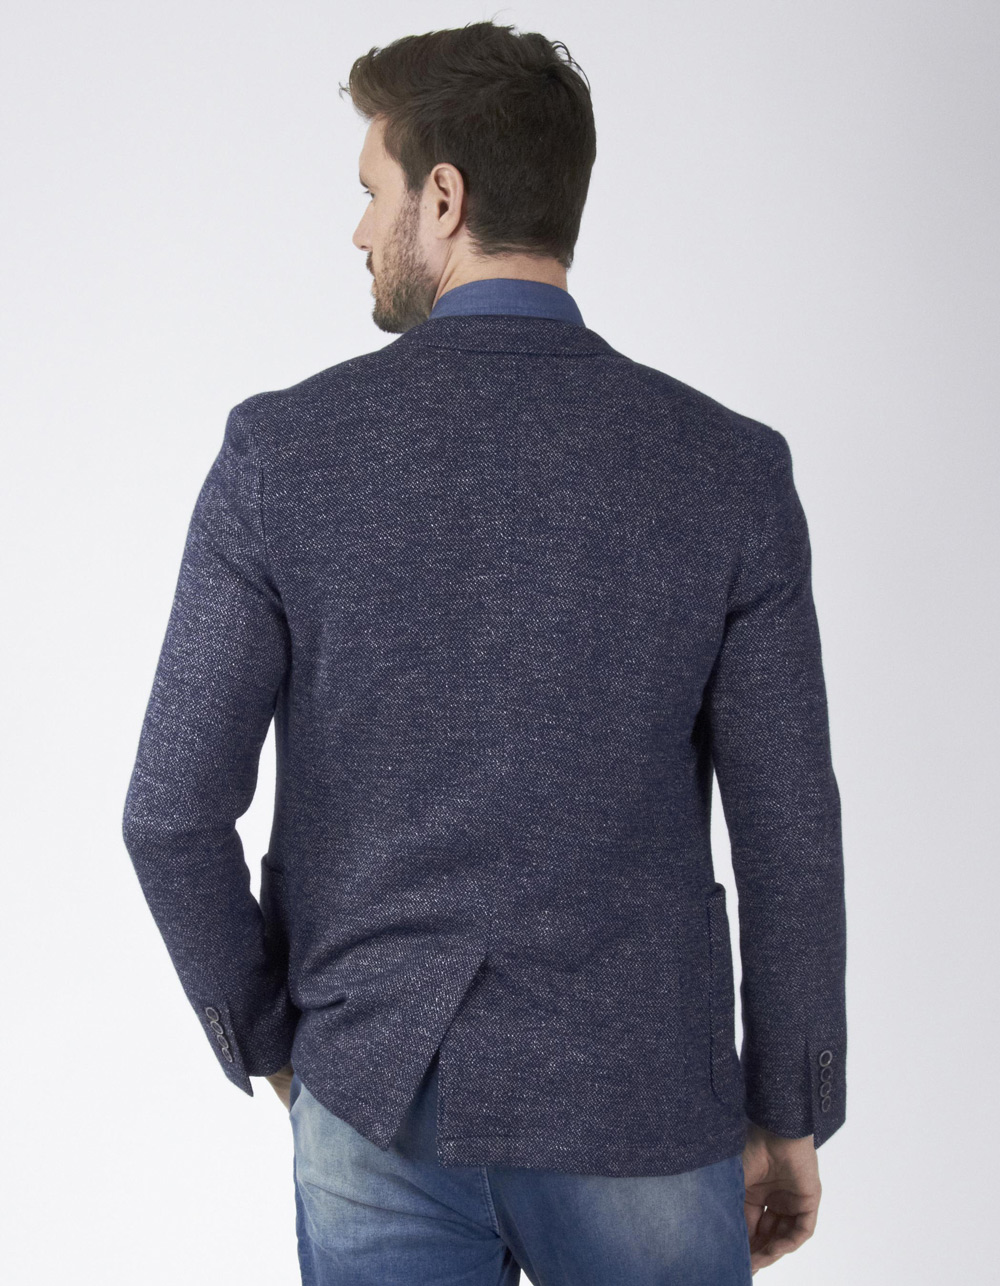 Navy blue pattern blazer - Backside